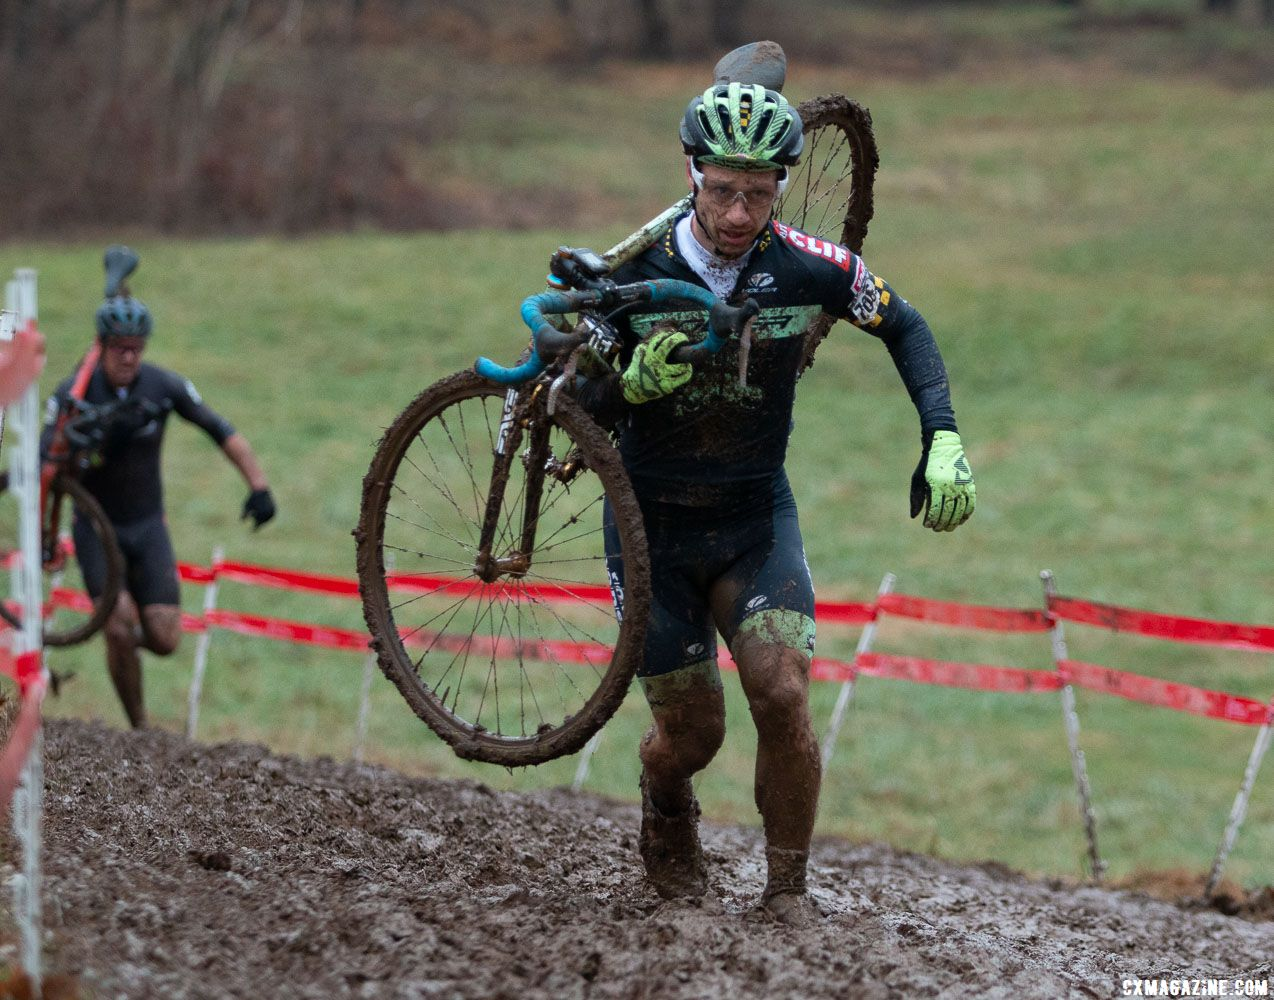 Max Judelson was at the front early on. Singlespeed Men. 2018 Cyclocross National Championships, Louisville, KY. © A. Yee / Cyclocross Magazine